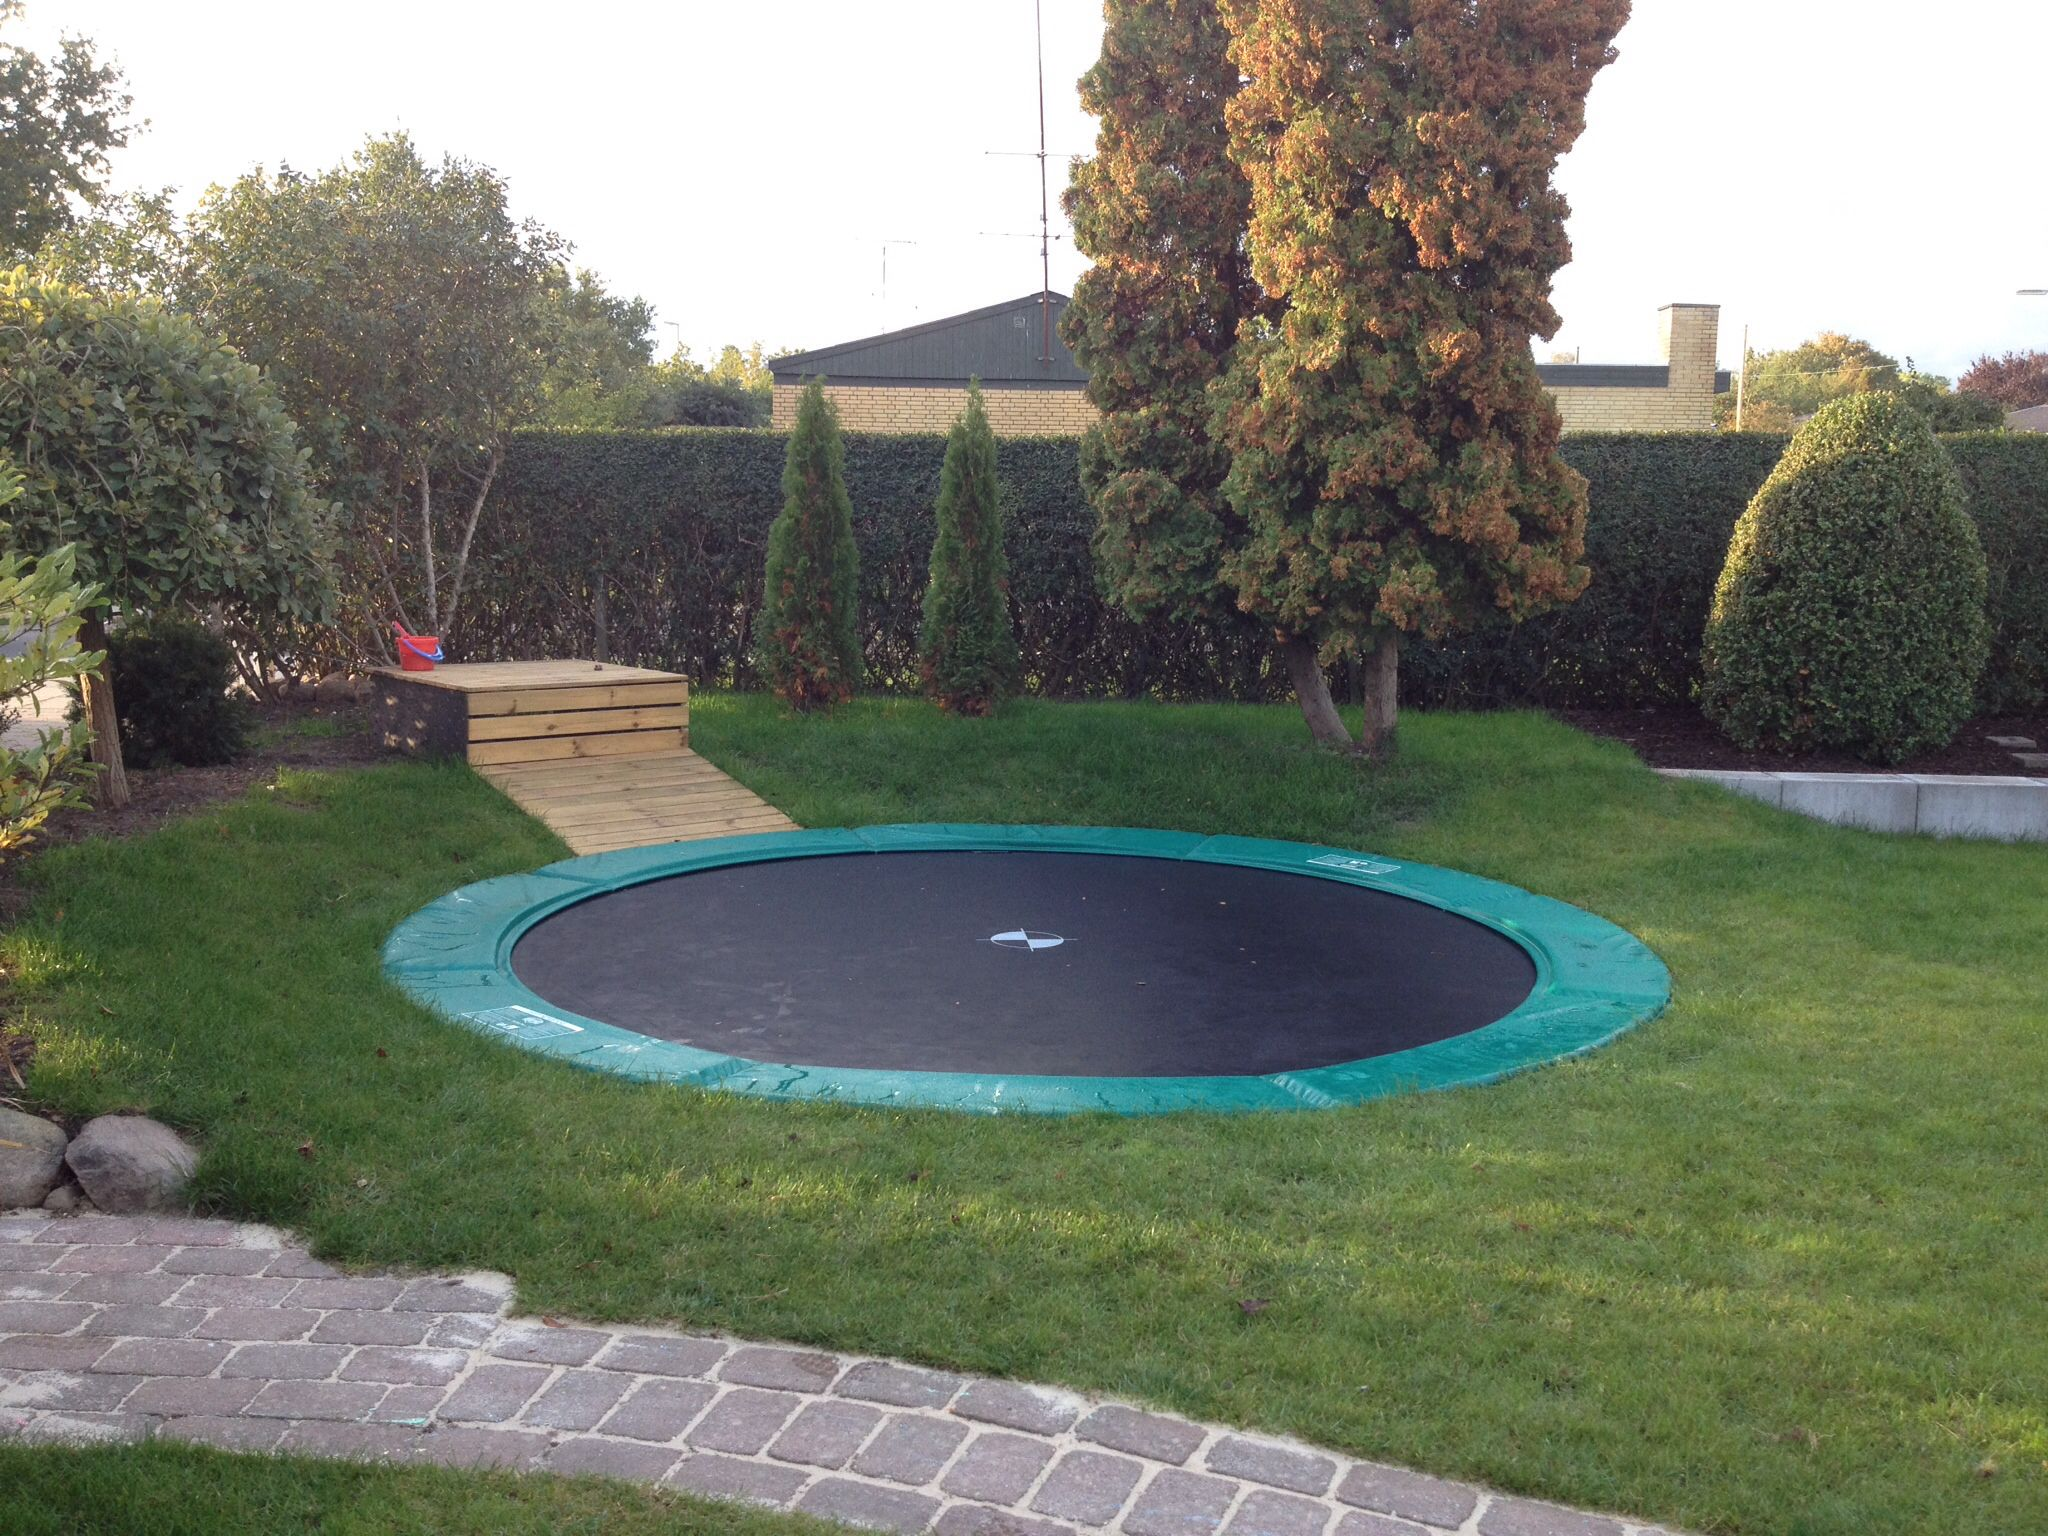 Berg Trampoline My New Inground Trampoline With And Airdock And A Great